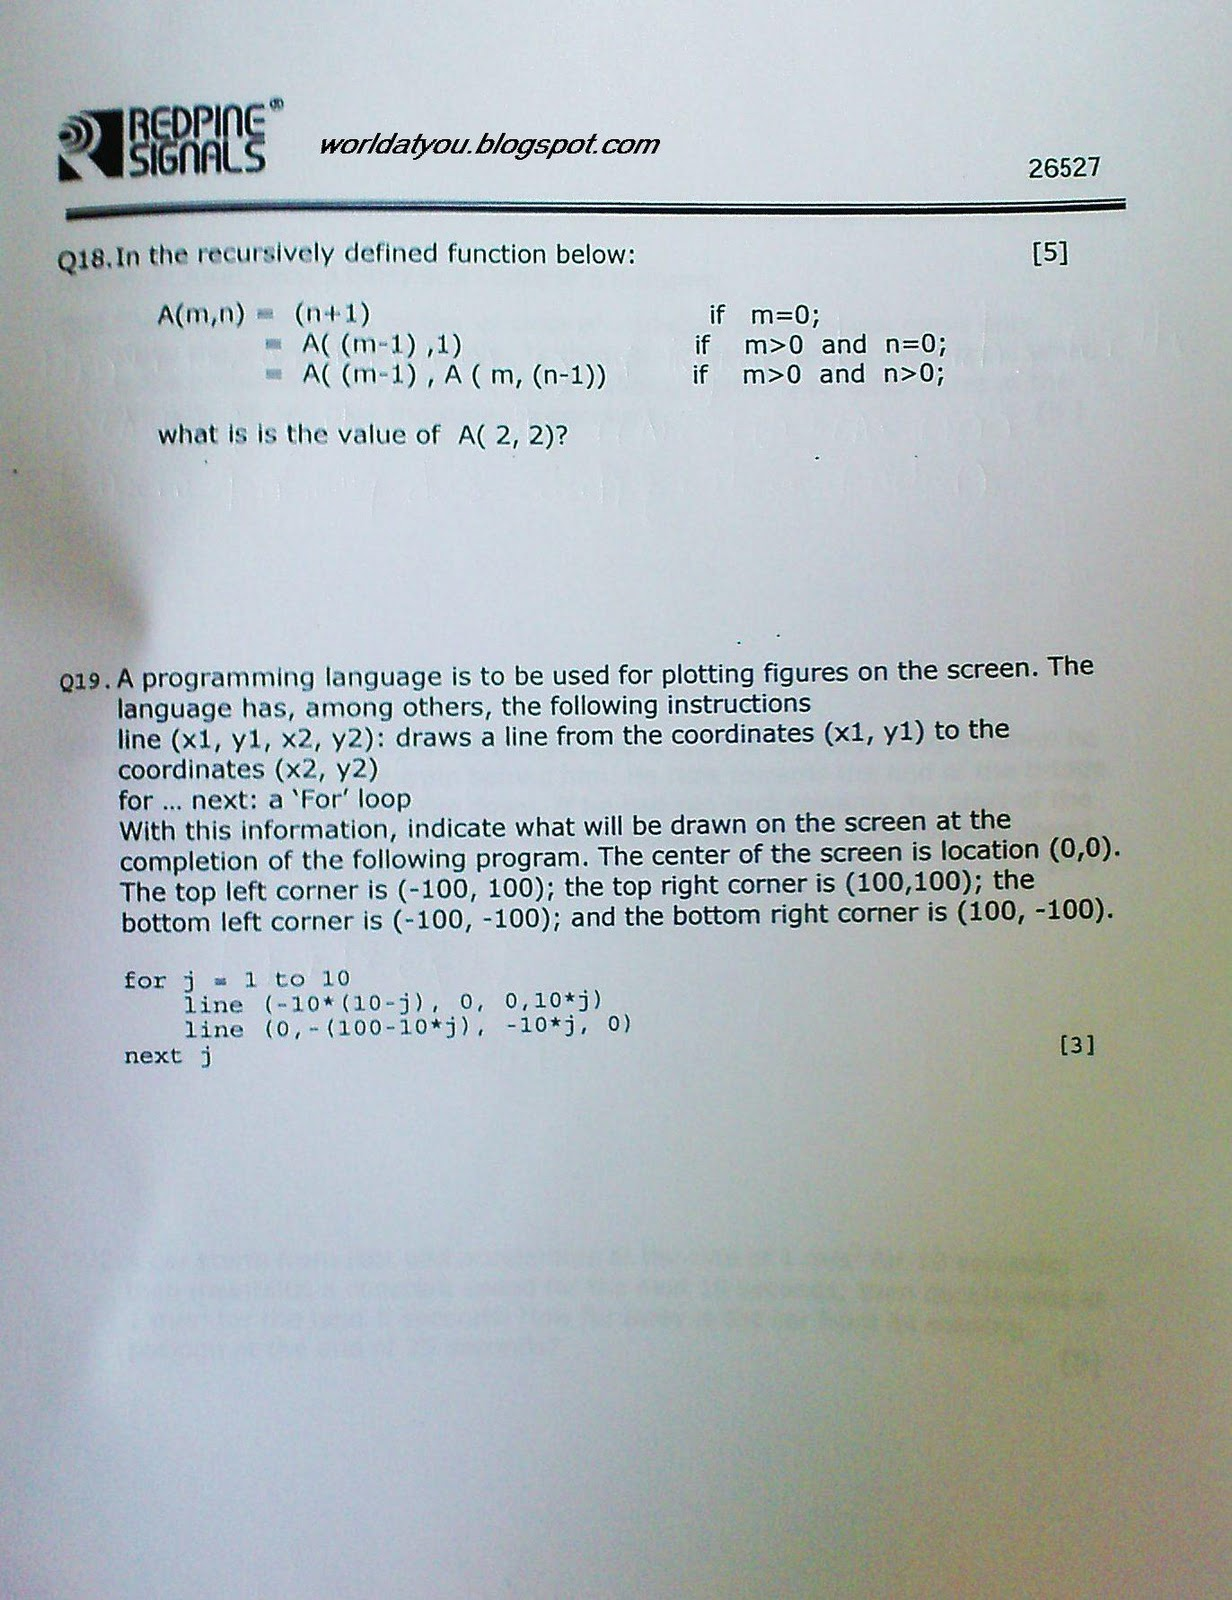 adp placement papers Paper: adp placement paper pattern (hyderabad) the question paper had 4 sections --sections a, b, c and d section a: it has totally 40 questions time 20 minutes 10 questions -analogies.